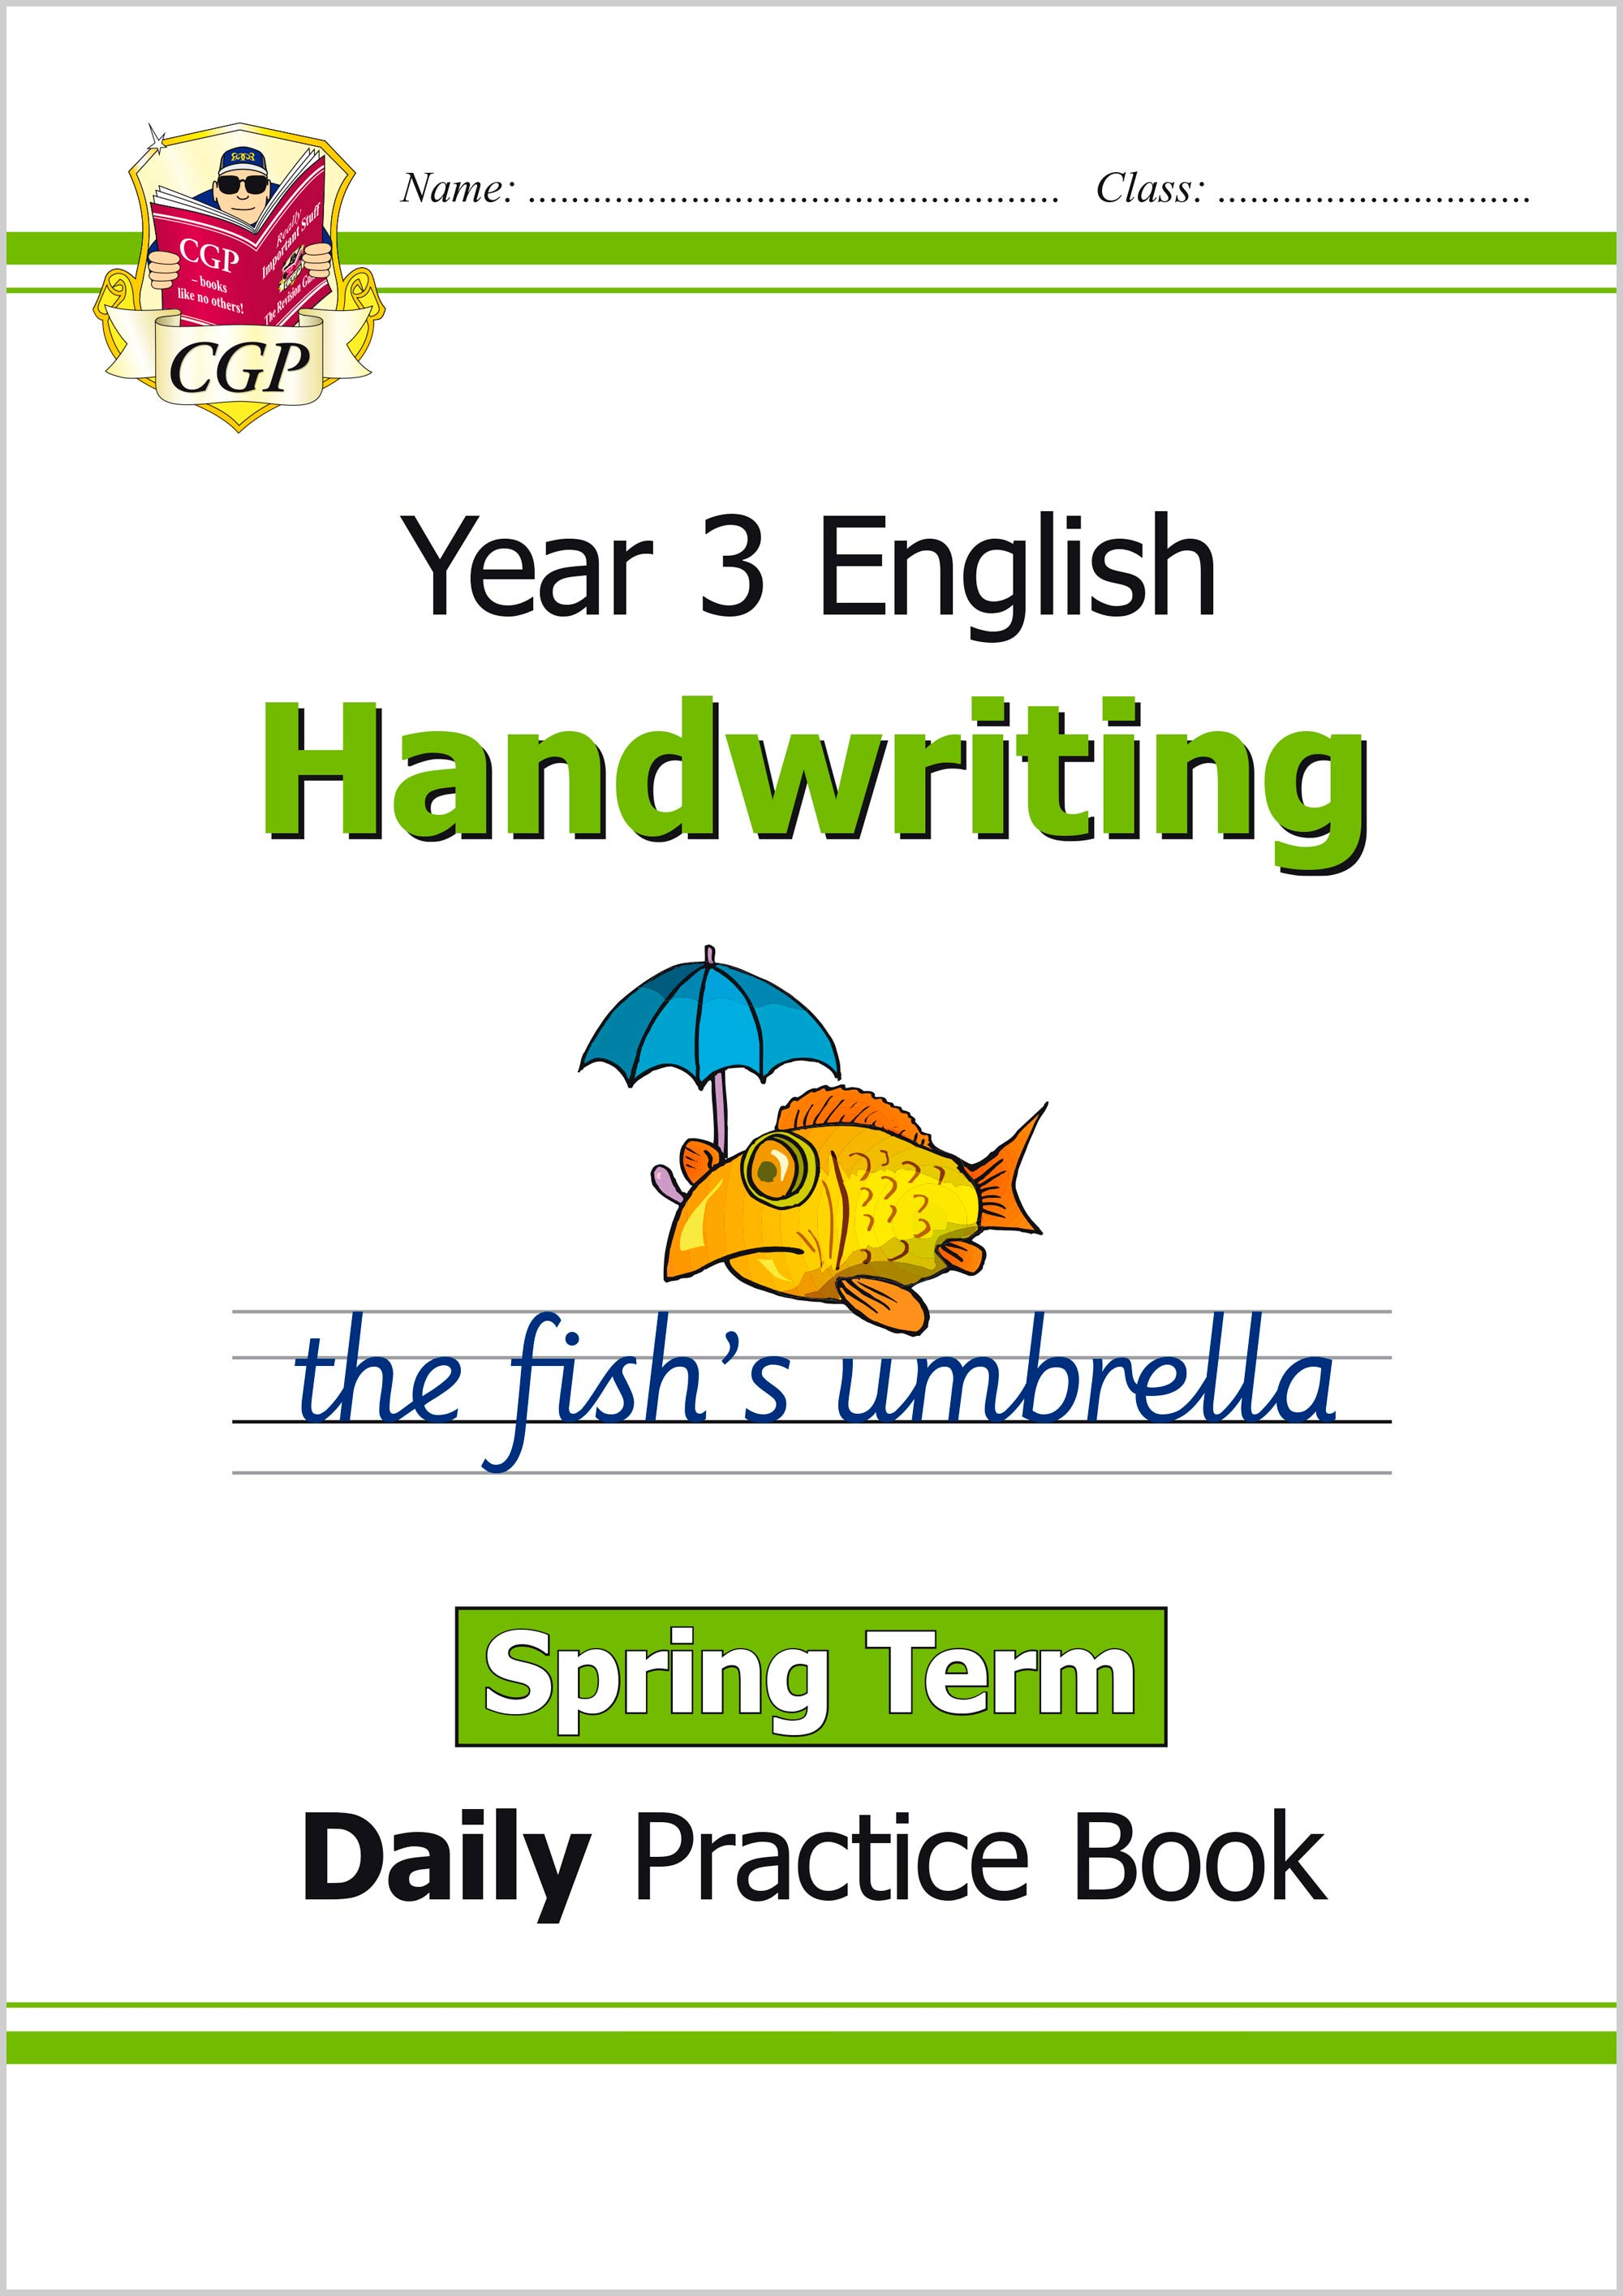 E3HWSP21 - New KS2 Handwriting Daily Practice Book: Year 3 - Spring Term